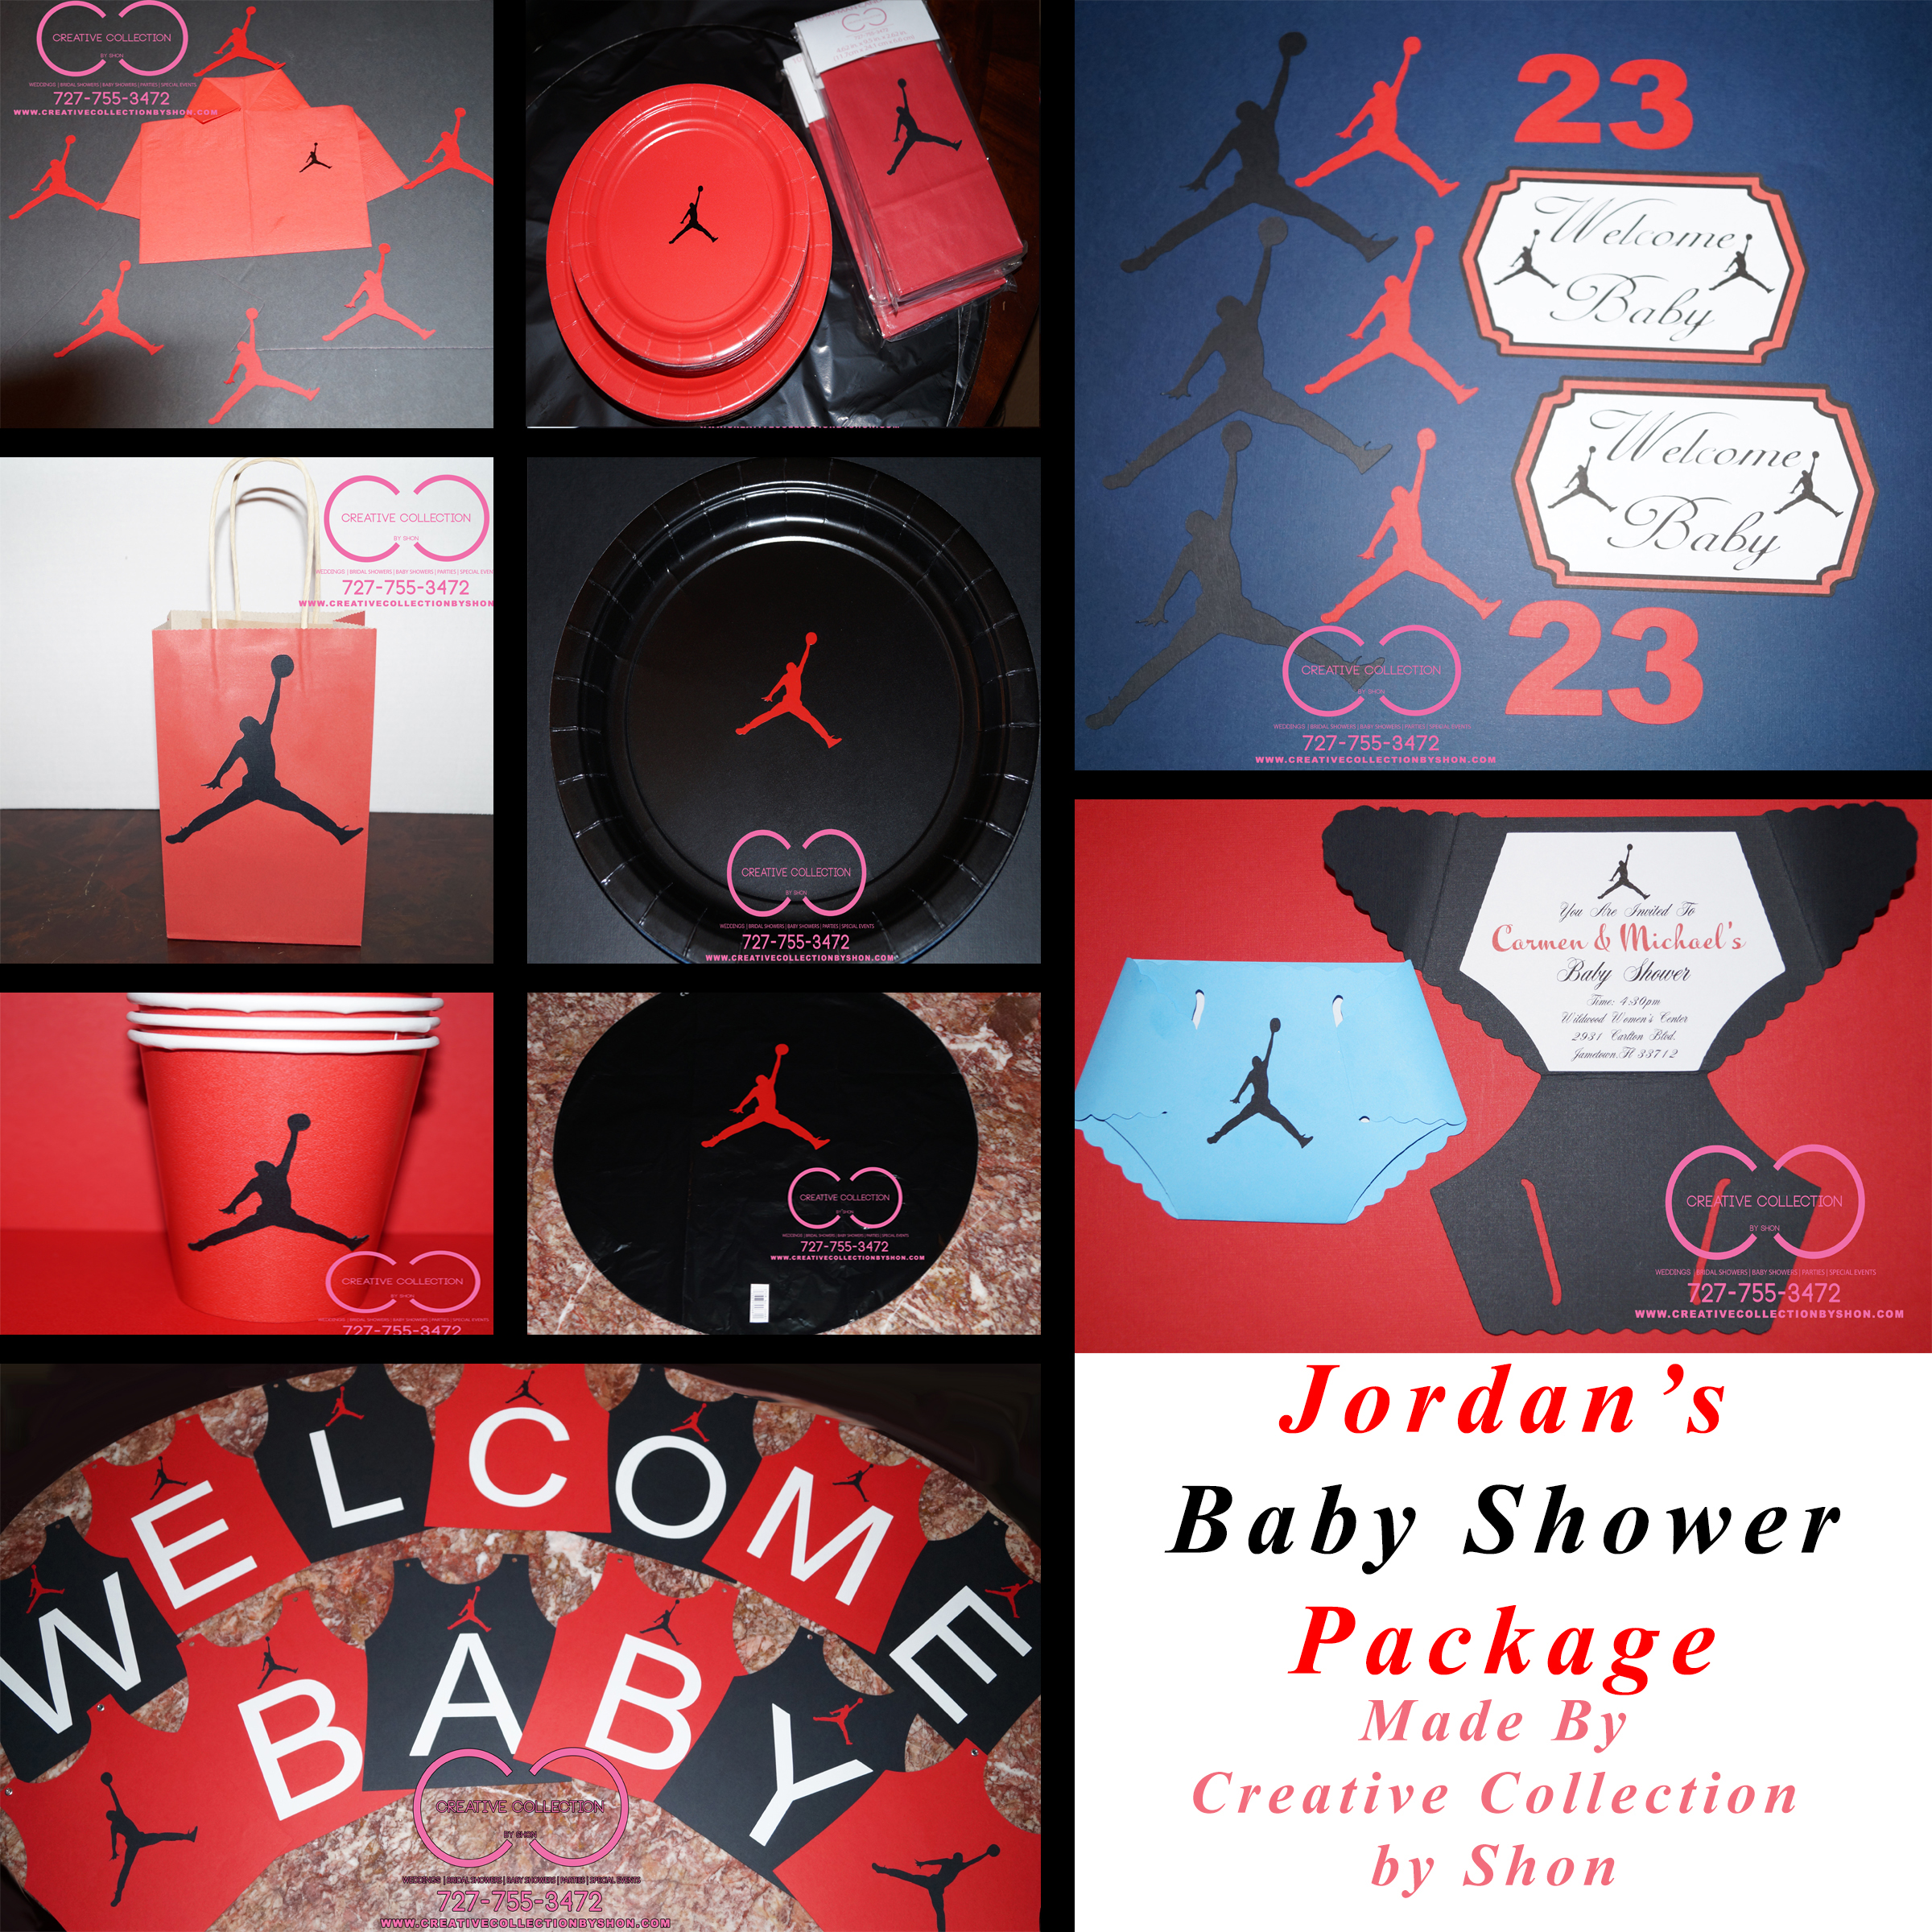 """e0be668c07b Jumpman """"Jordan"""" Inspired Baby Shower Package – Creative Collection ..."""